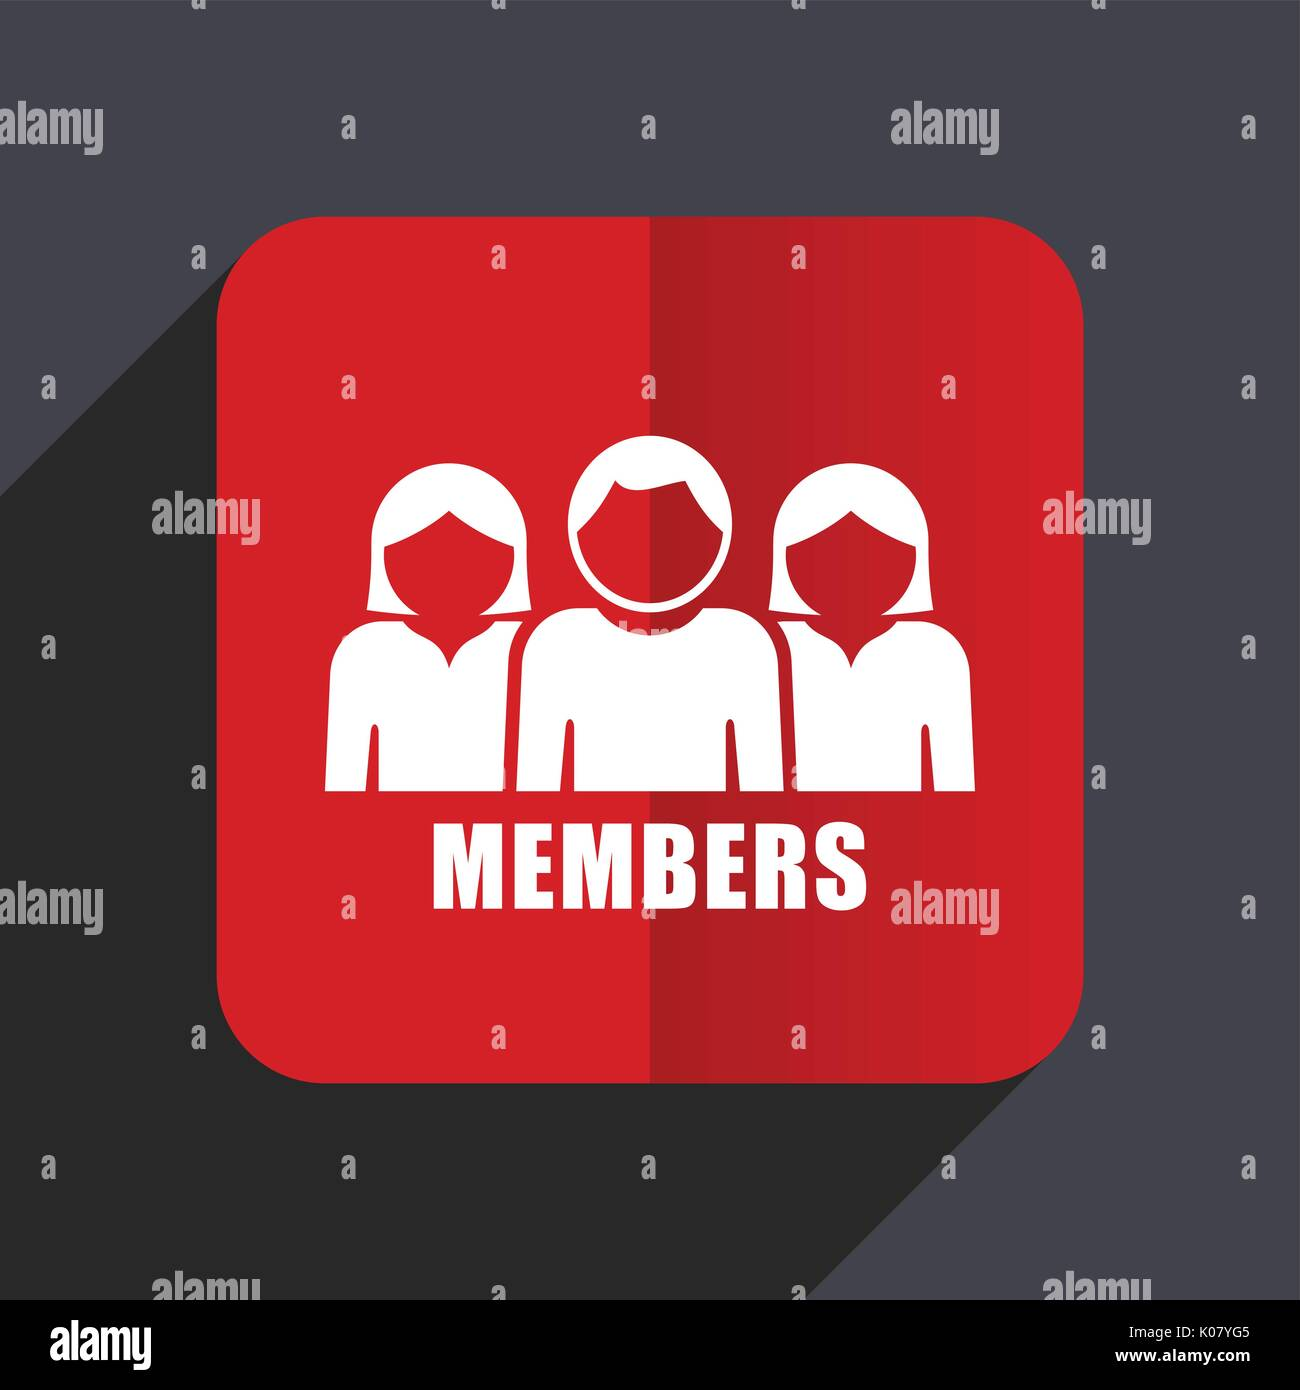 Members flat design web vector icon. Red square sign on gray background in eps 10. - Stock Vector